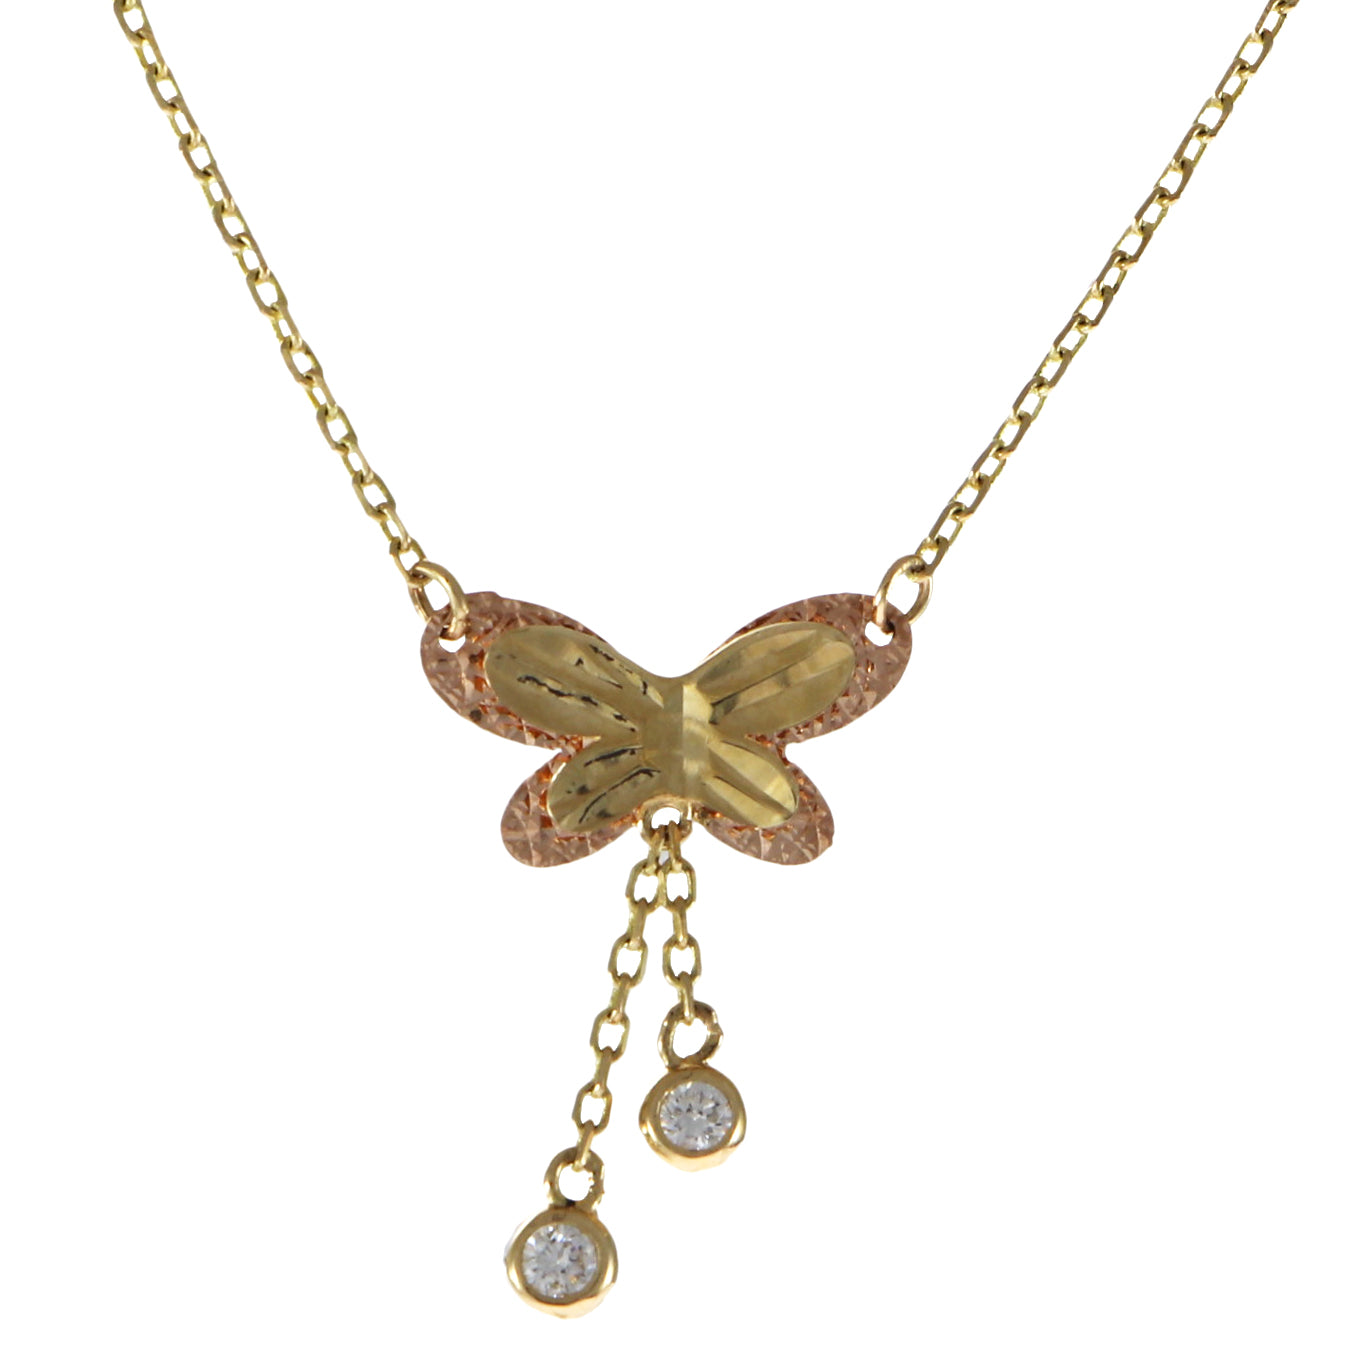 Double Butterfly Diamond Pendant Necklace 14k Yellow Gold Cable Chain The Jewelry Gallery Of Oyster Bay